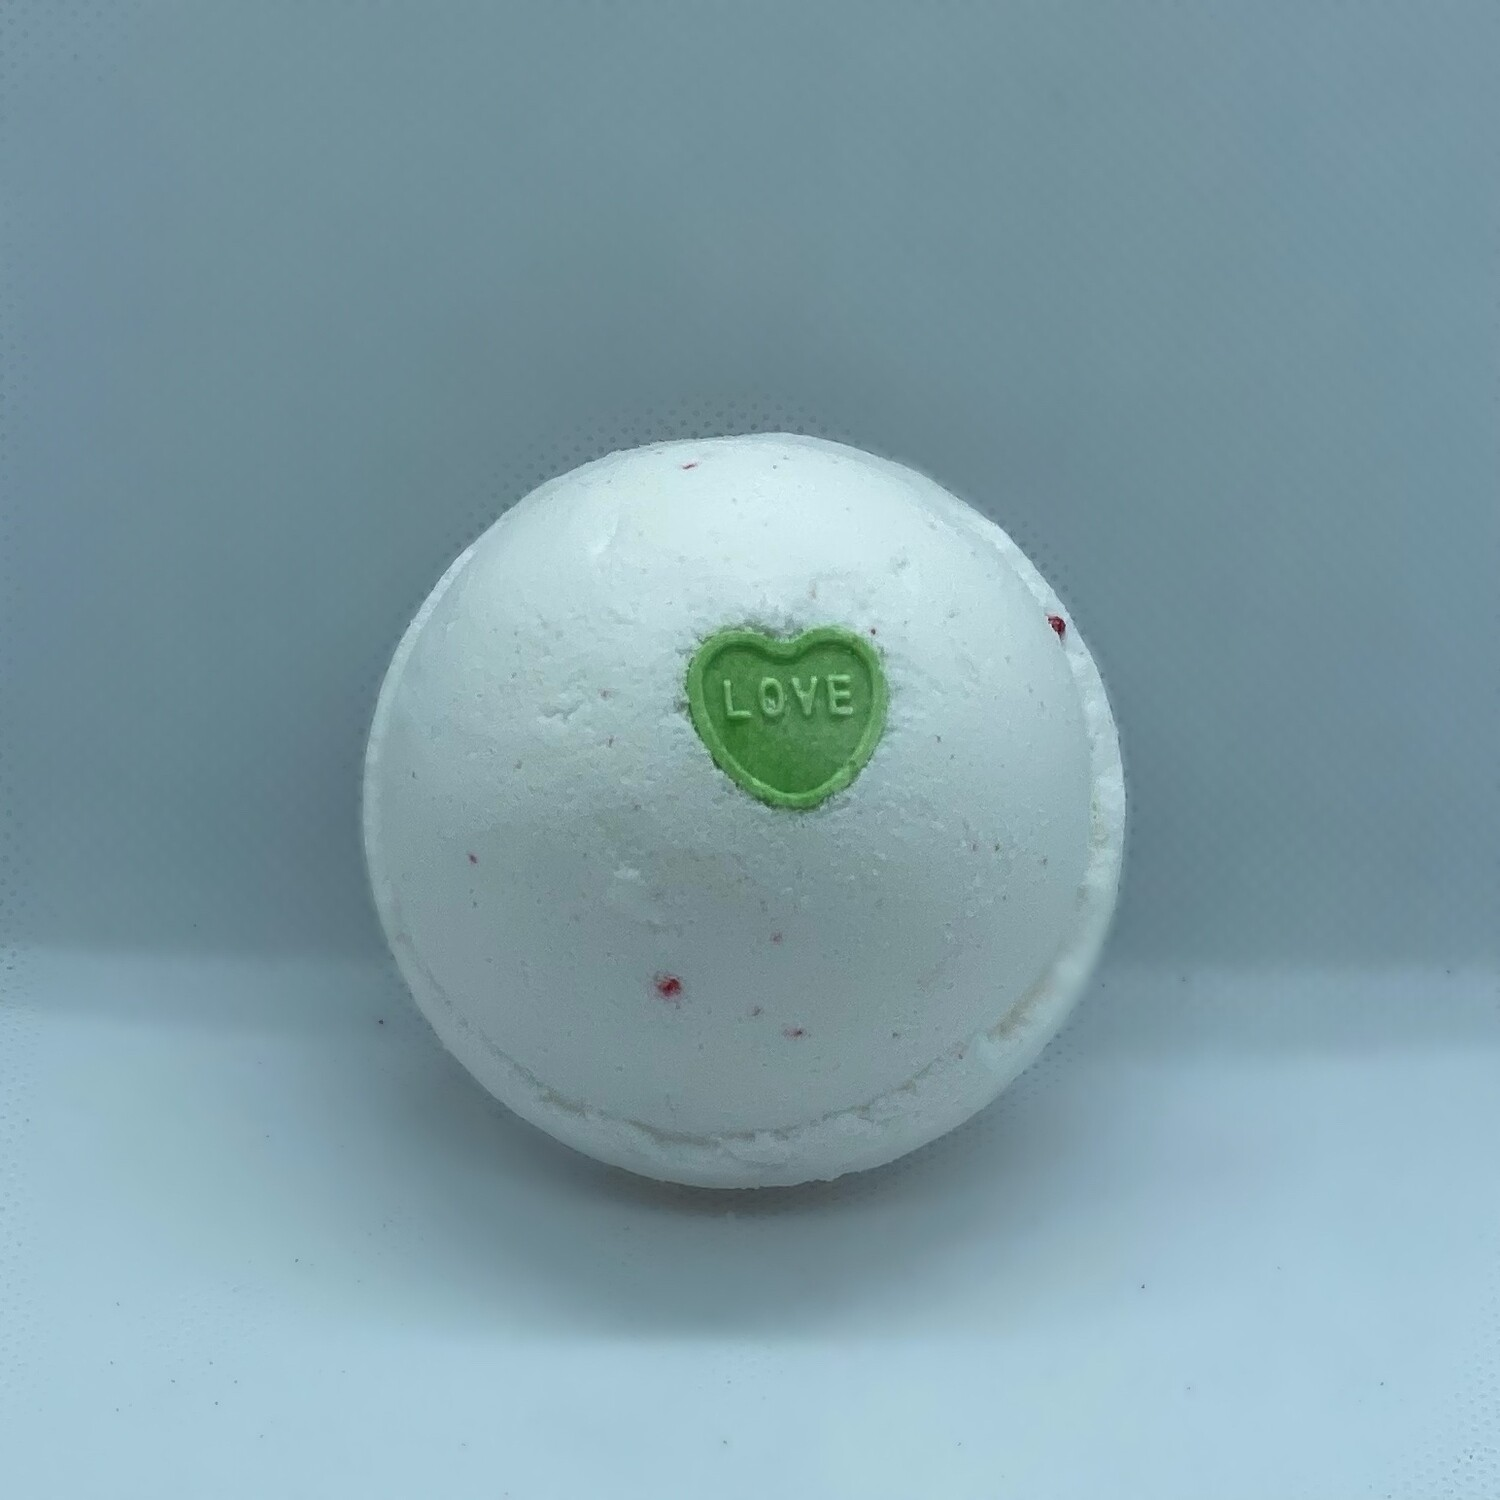 Candy Hearts (Cherry Almond) Bath Bomb